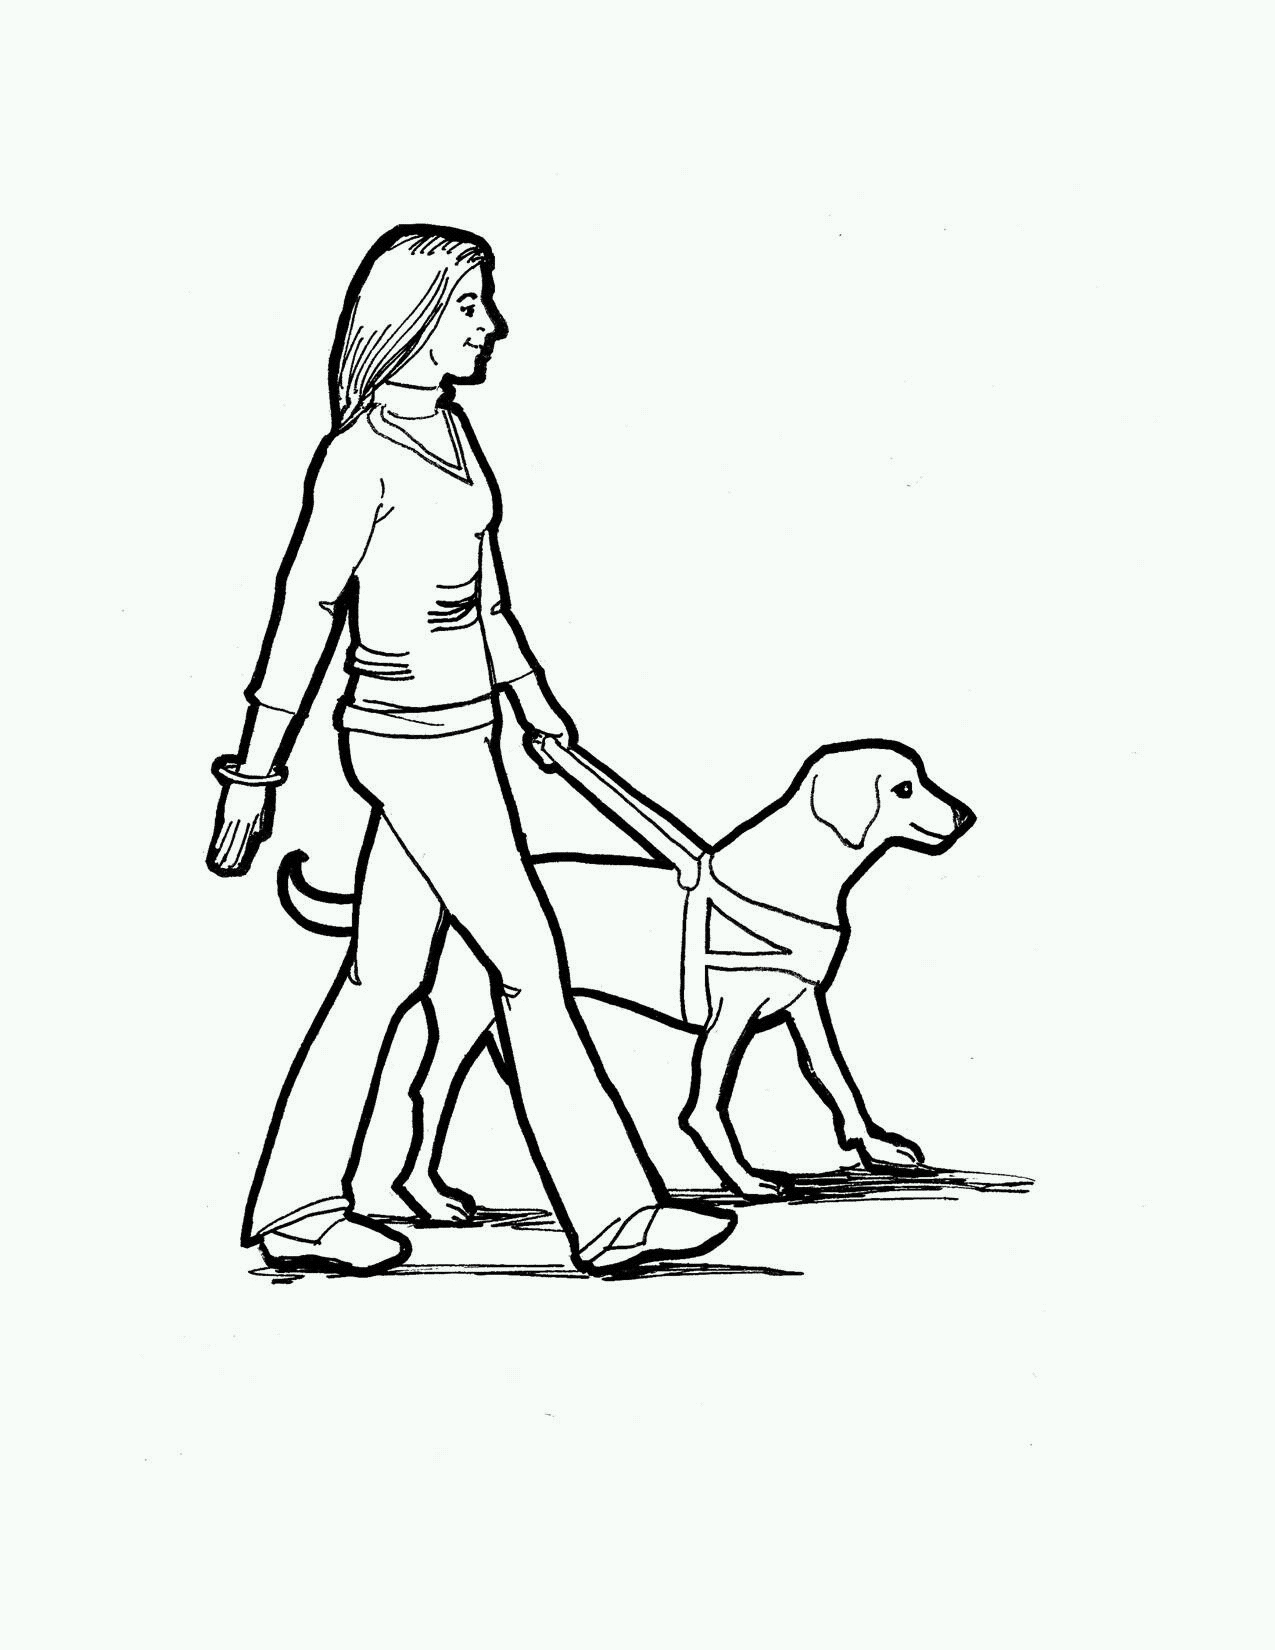 Guide Dog Clipart - Clipart Kid